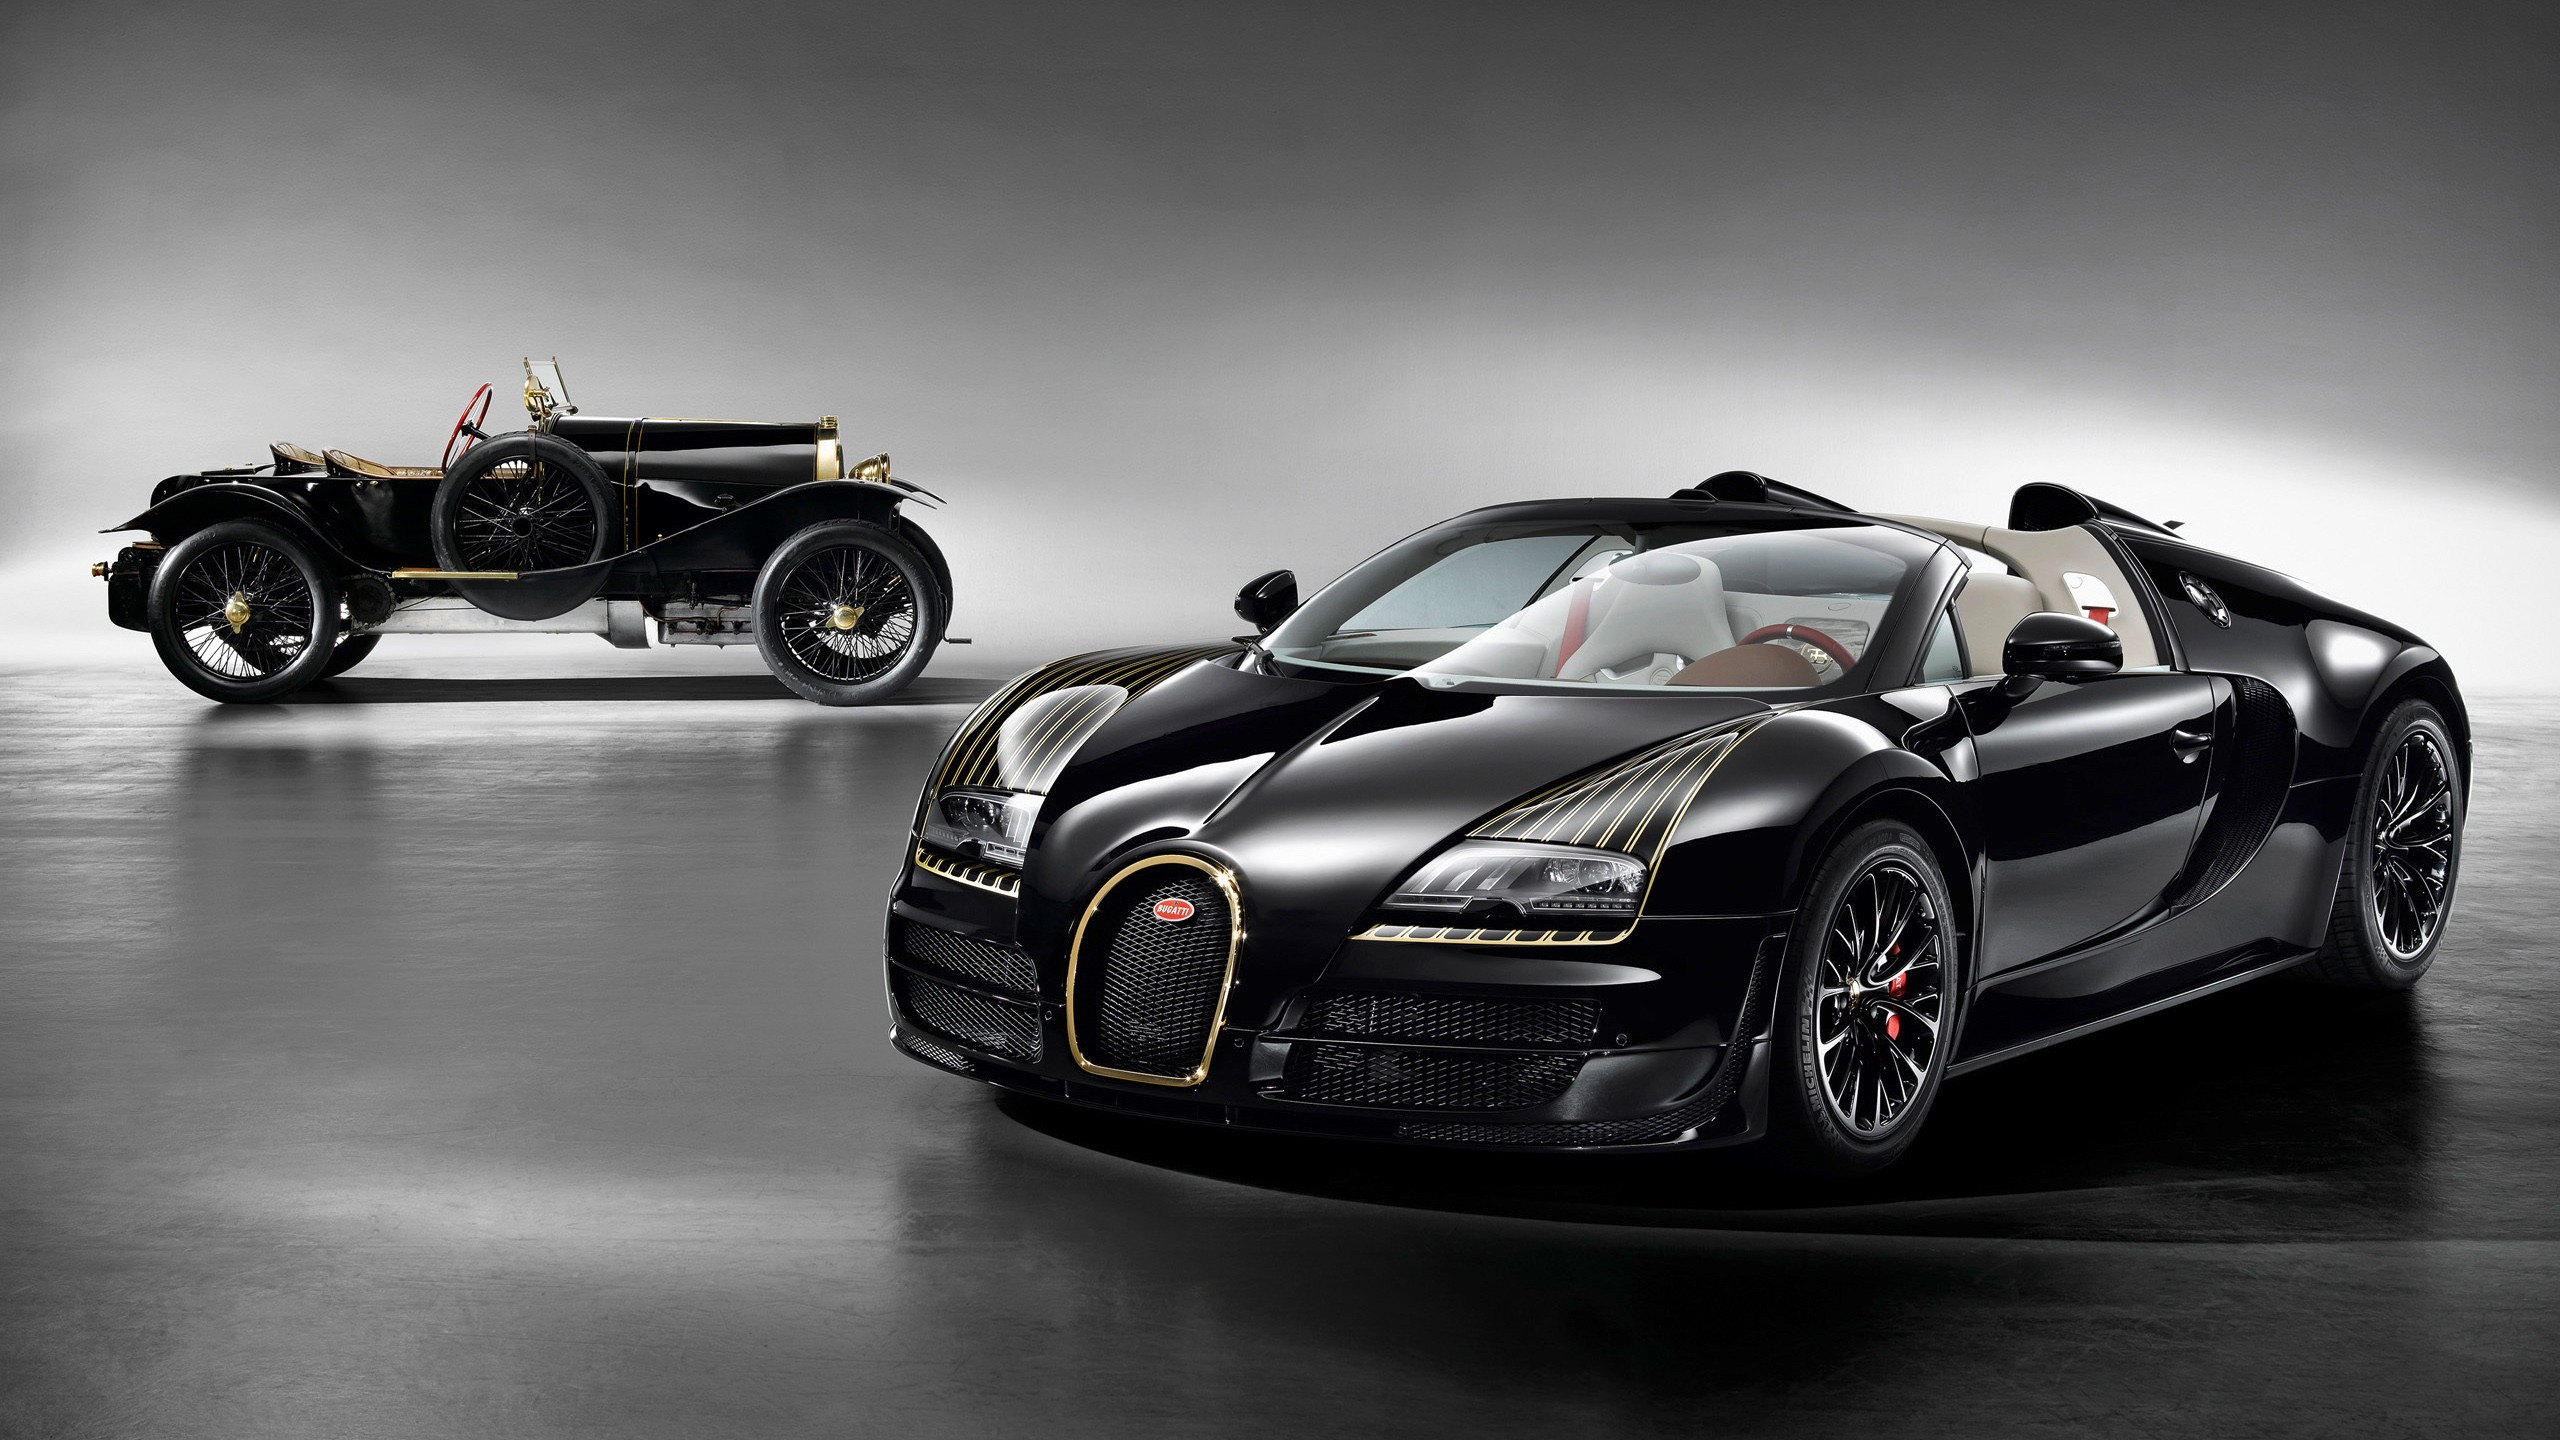 2014 bugatti veyron grand sport vitesse legend black bess. Black Bedroom Furniture Sets. Home Design Ideas